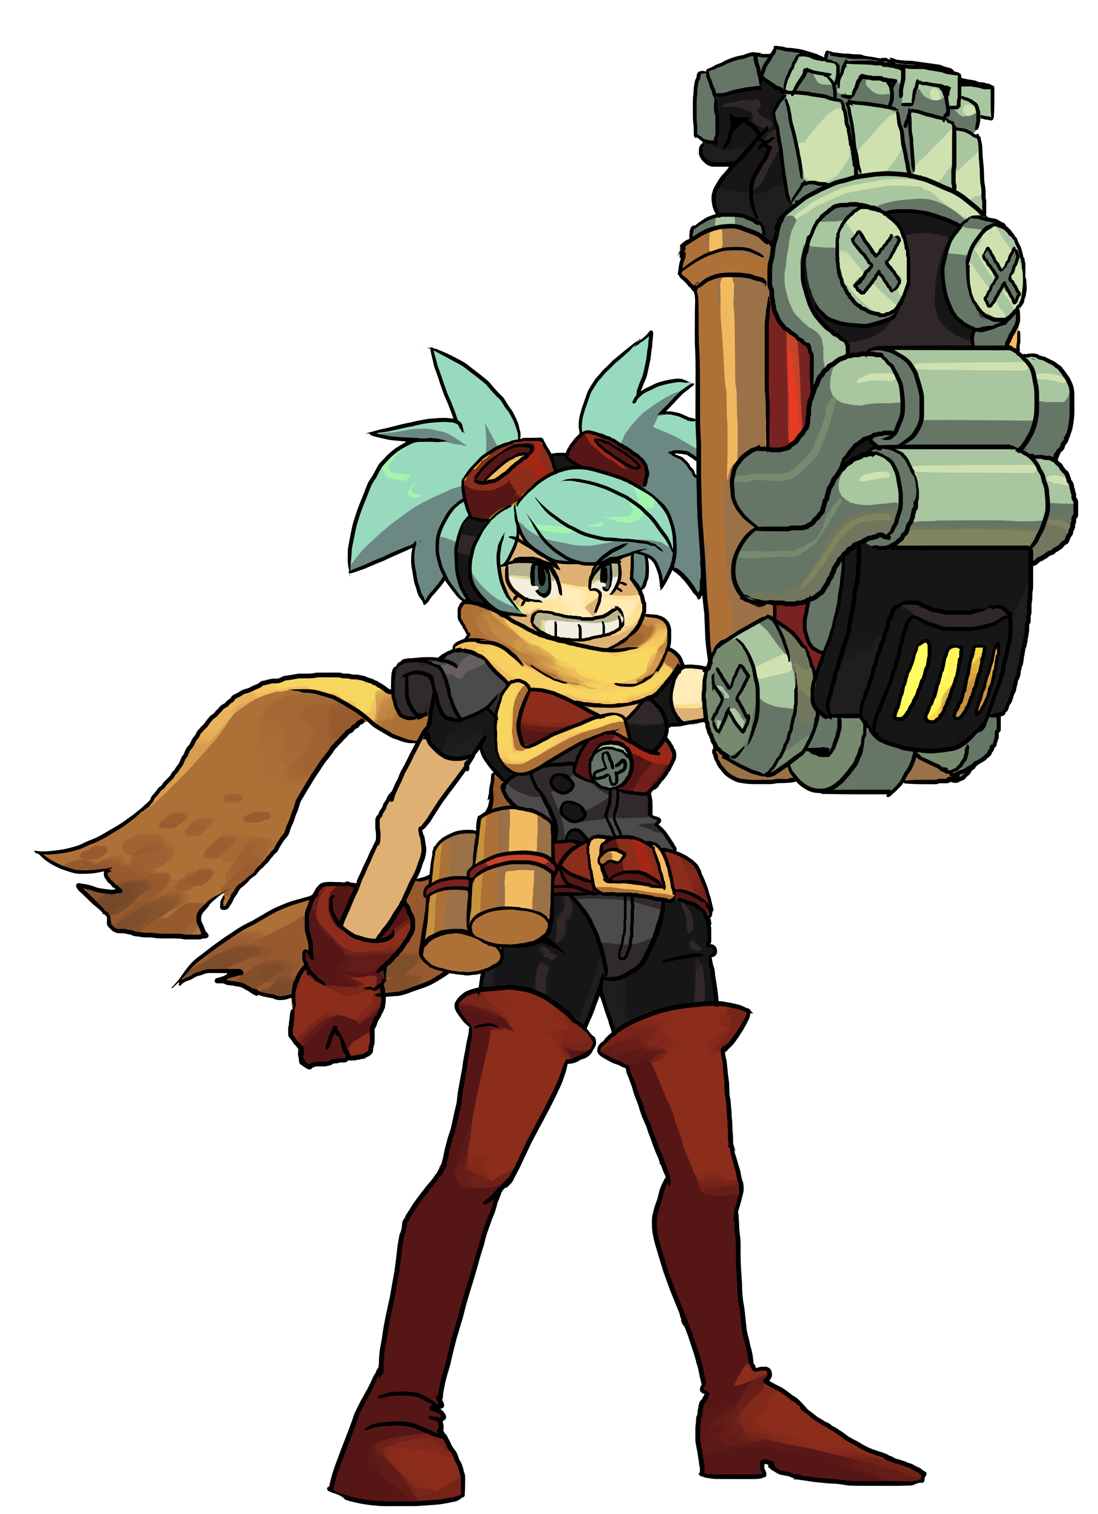 Fear clipart fearful. Indivisible rpg from the